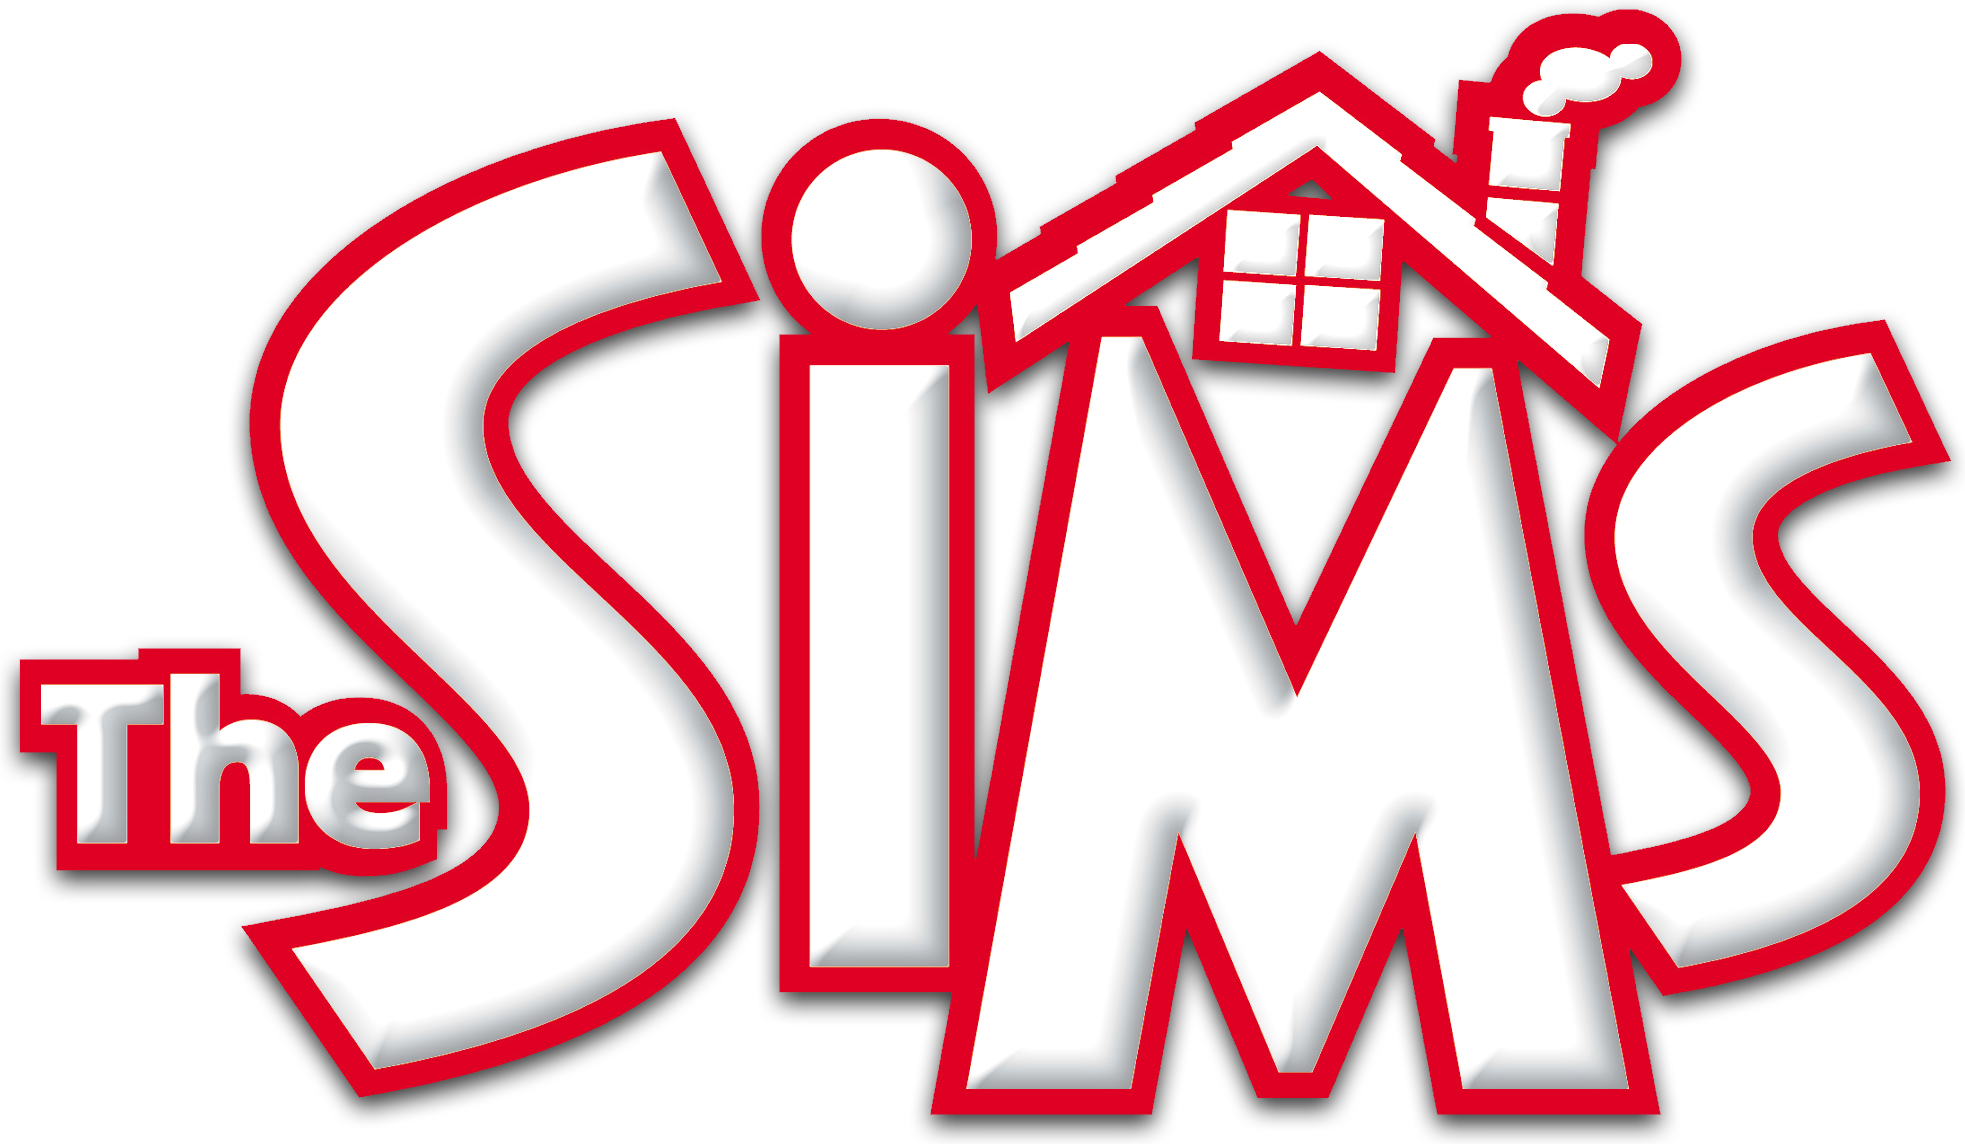 Bestand:The Sims Logo.png